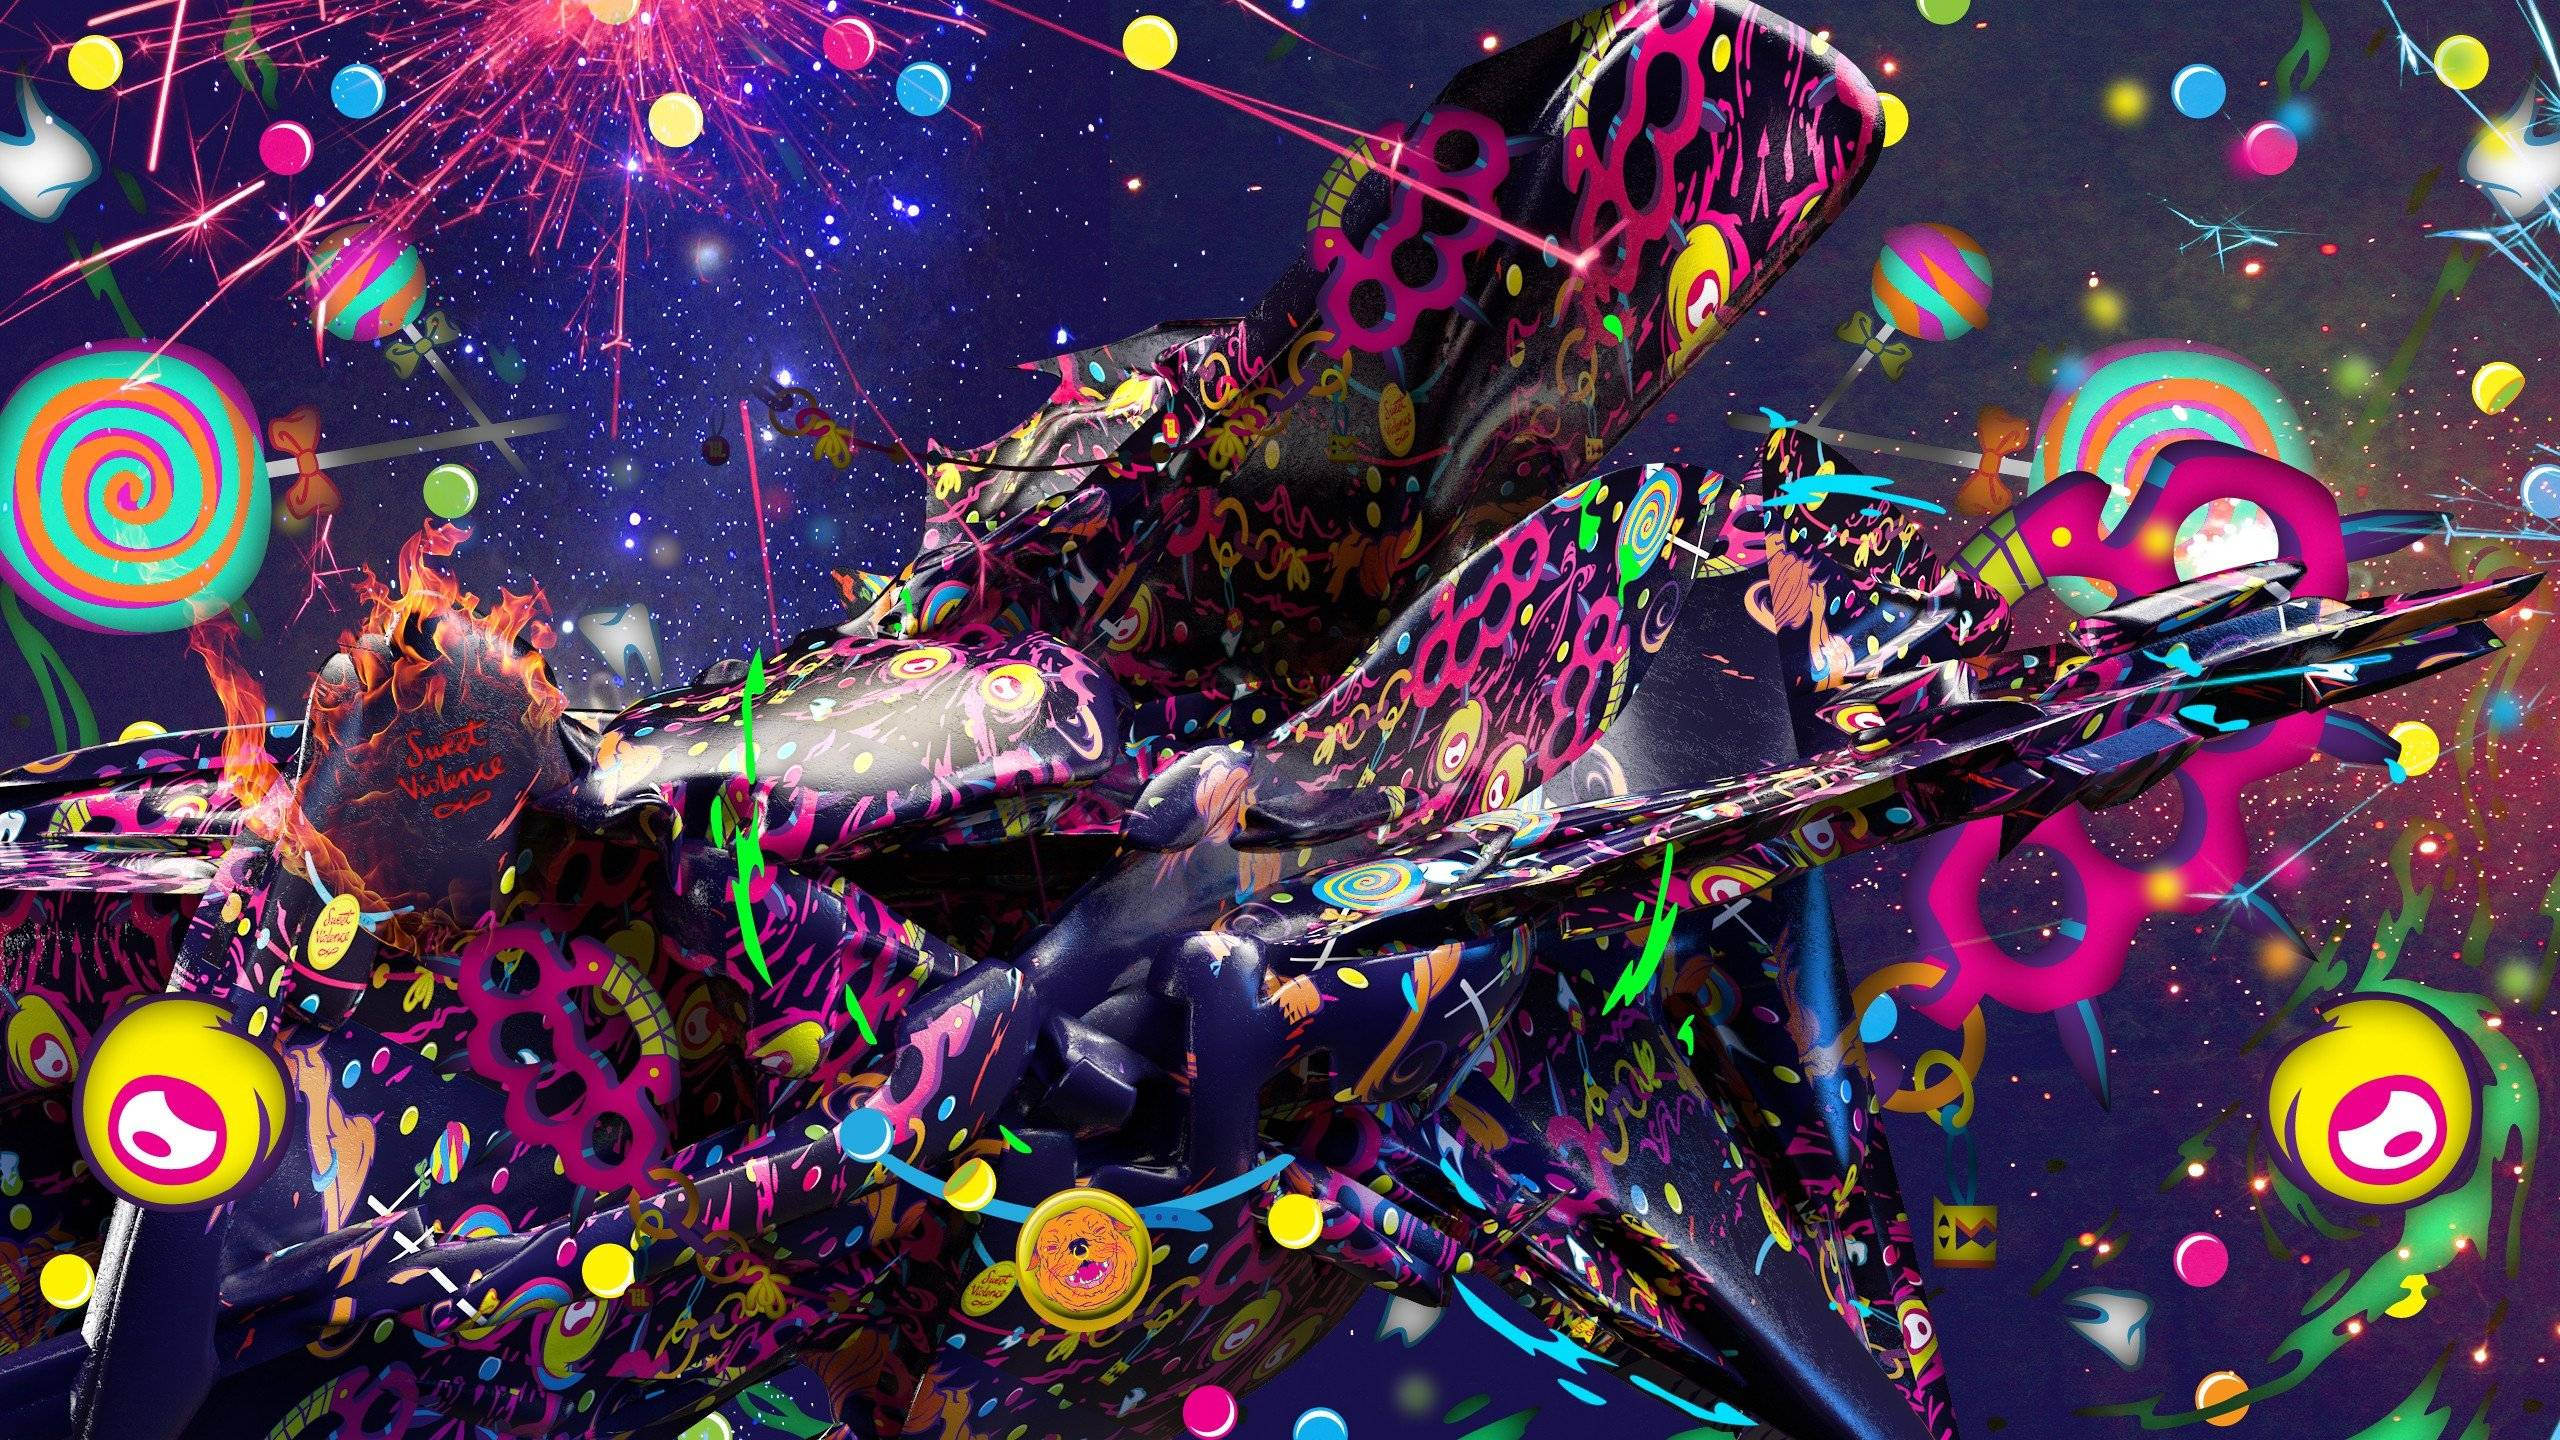 Psychedelic Wallpaper 2560 1440